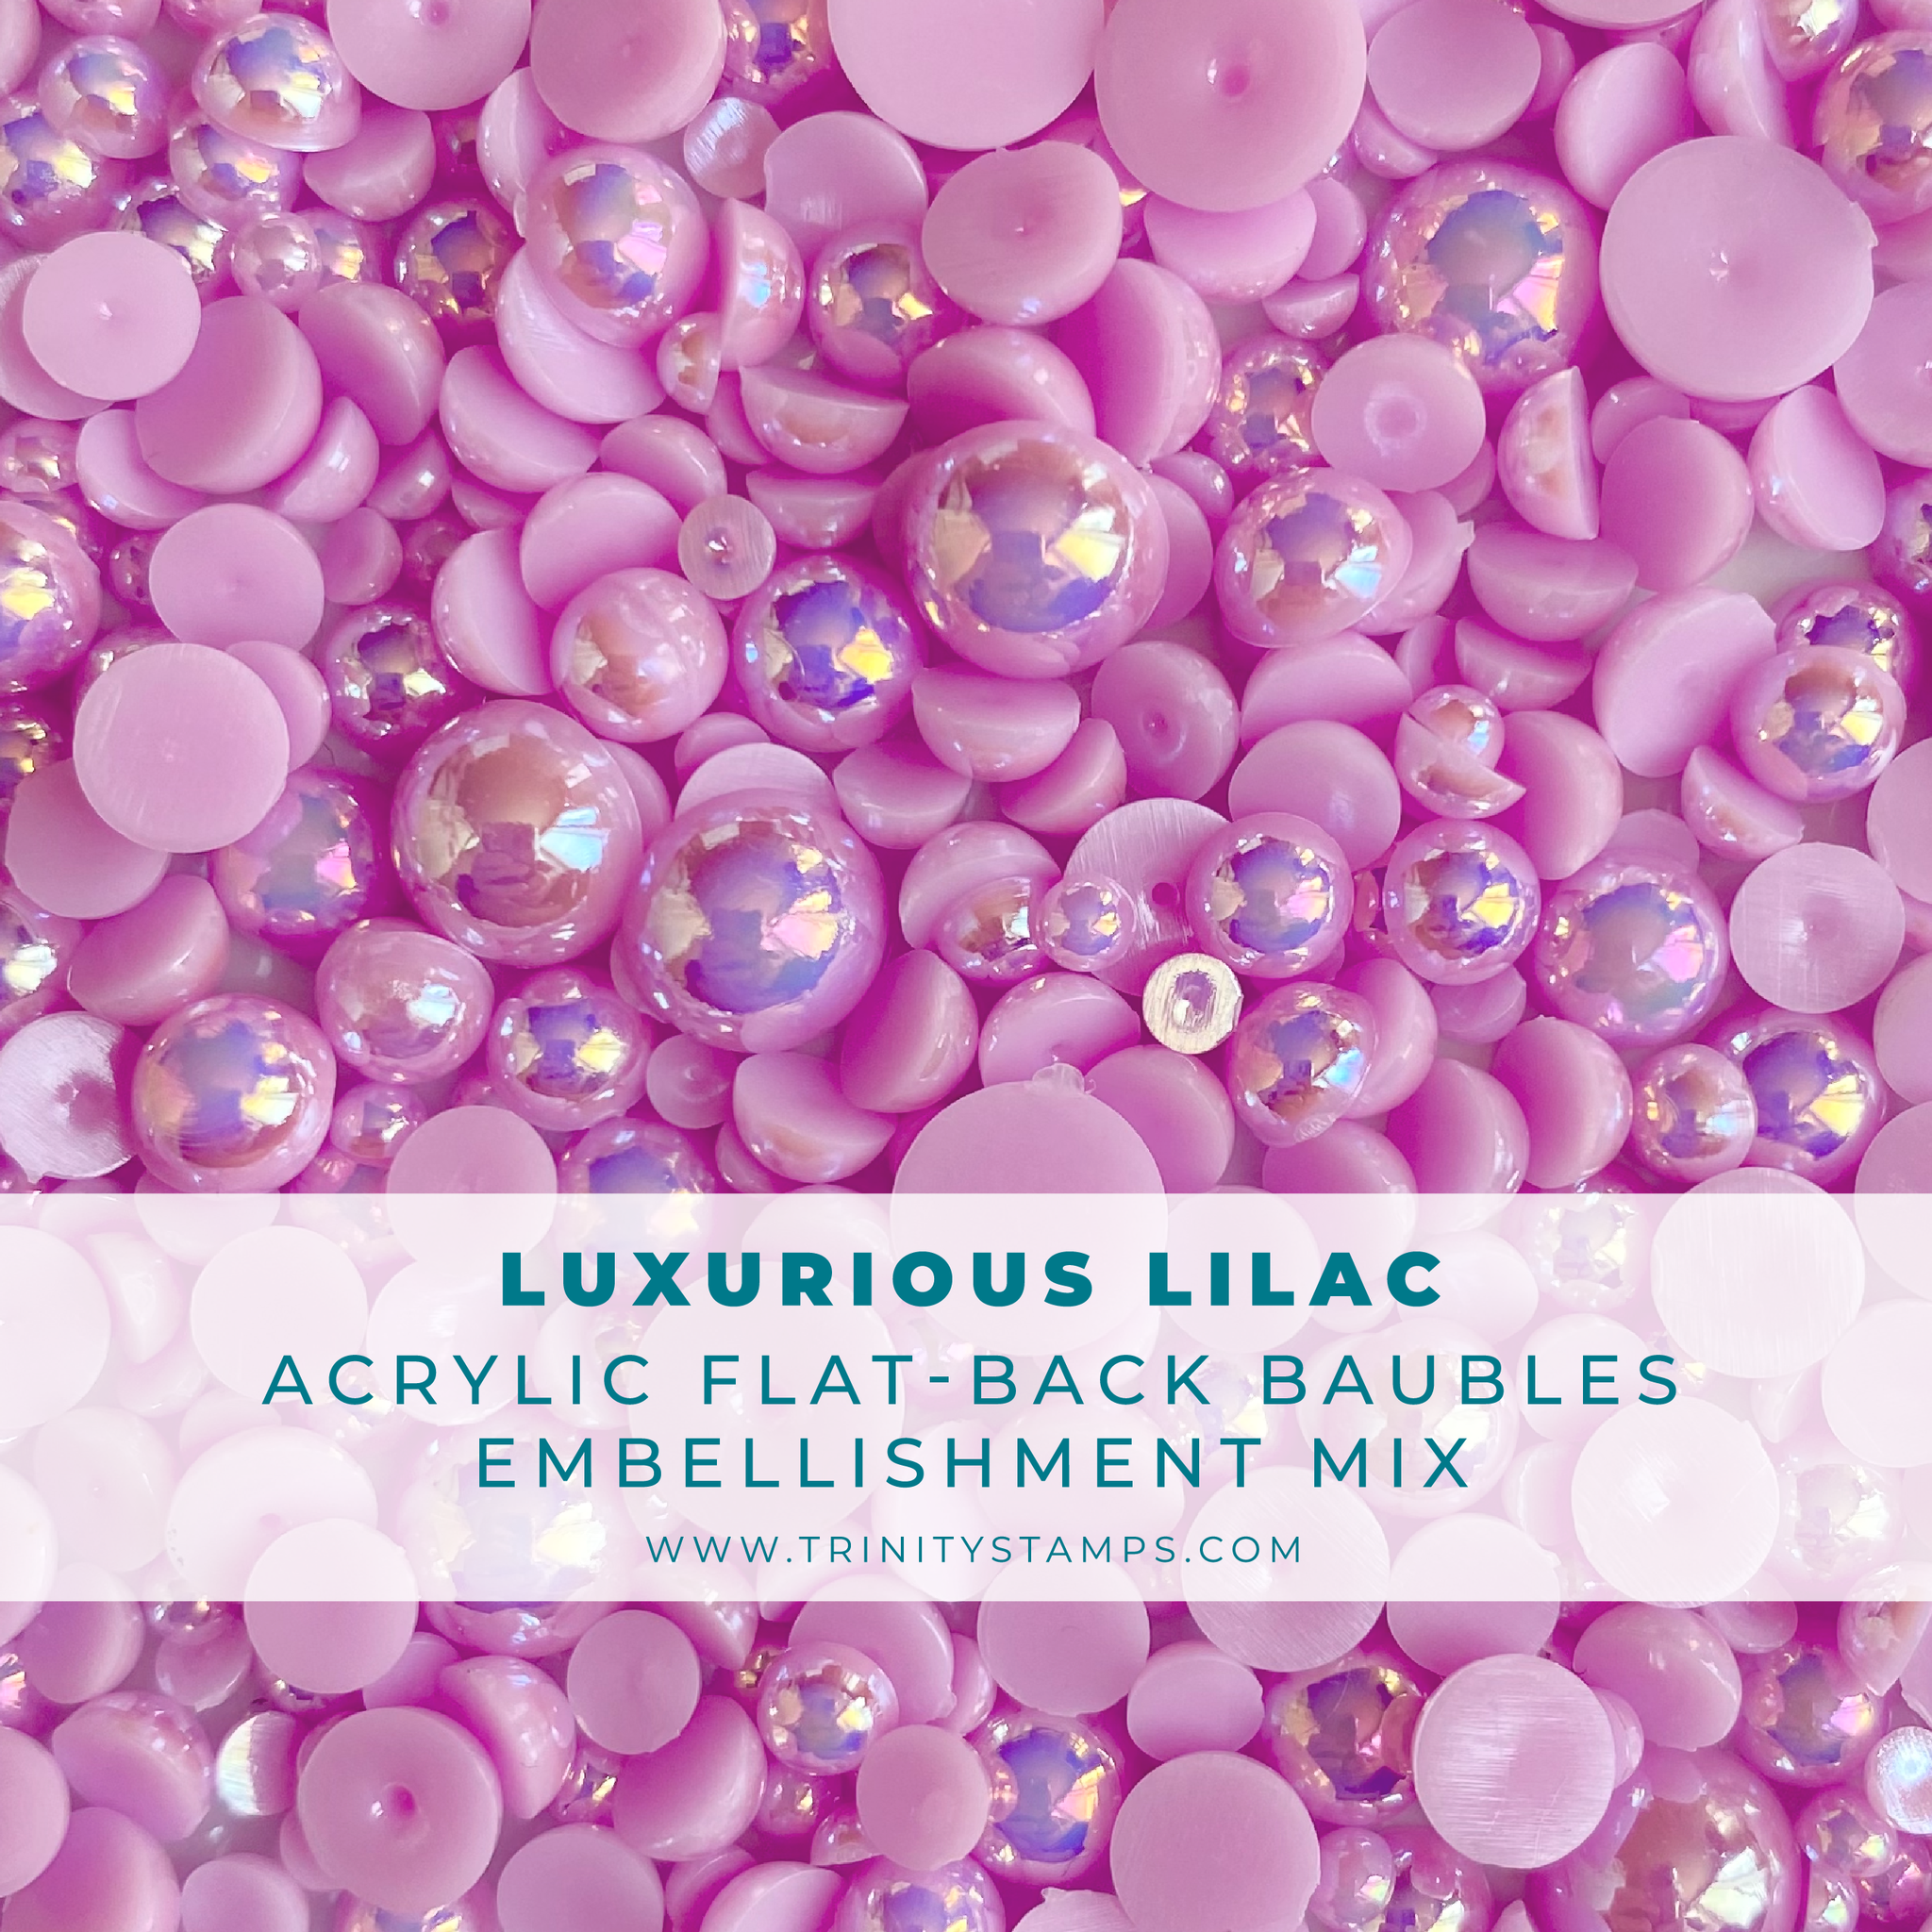 *NEW* - Trinity Stamps - Luxurious Lilac Baubles Embellishment Mix